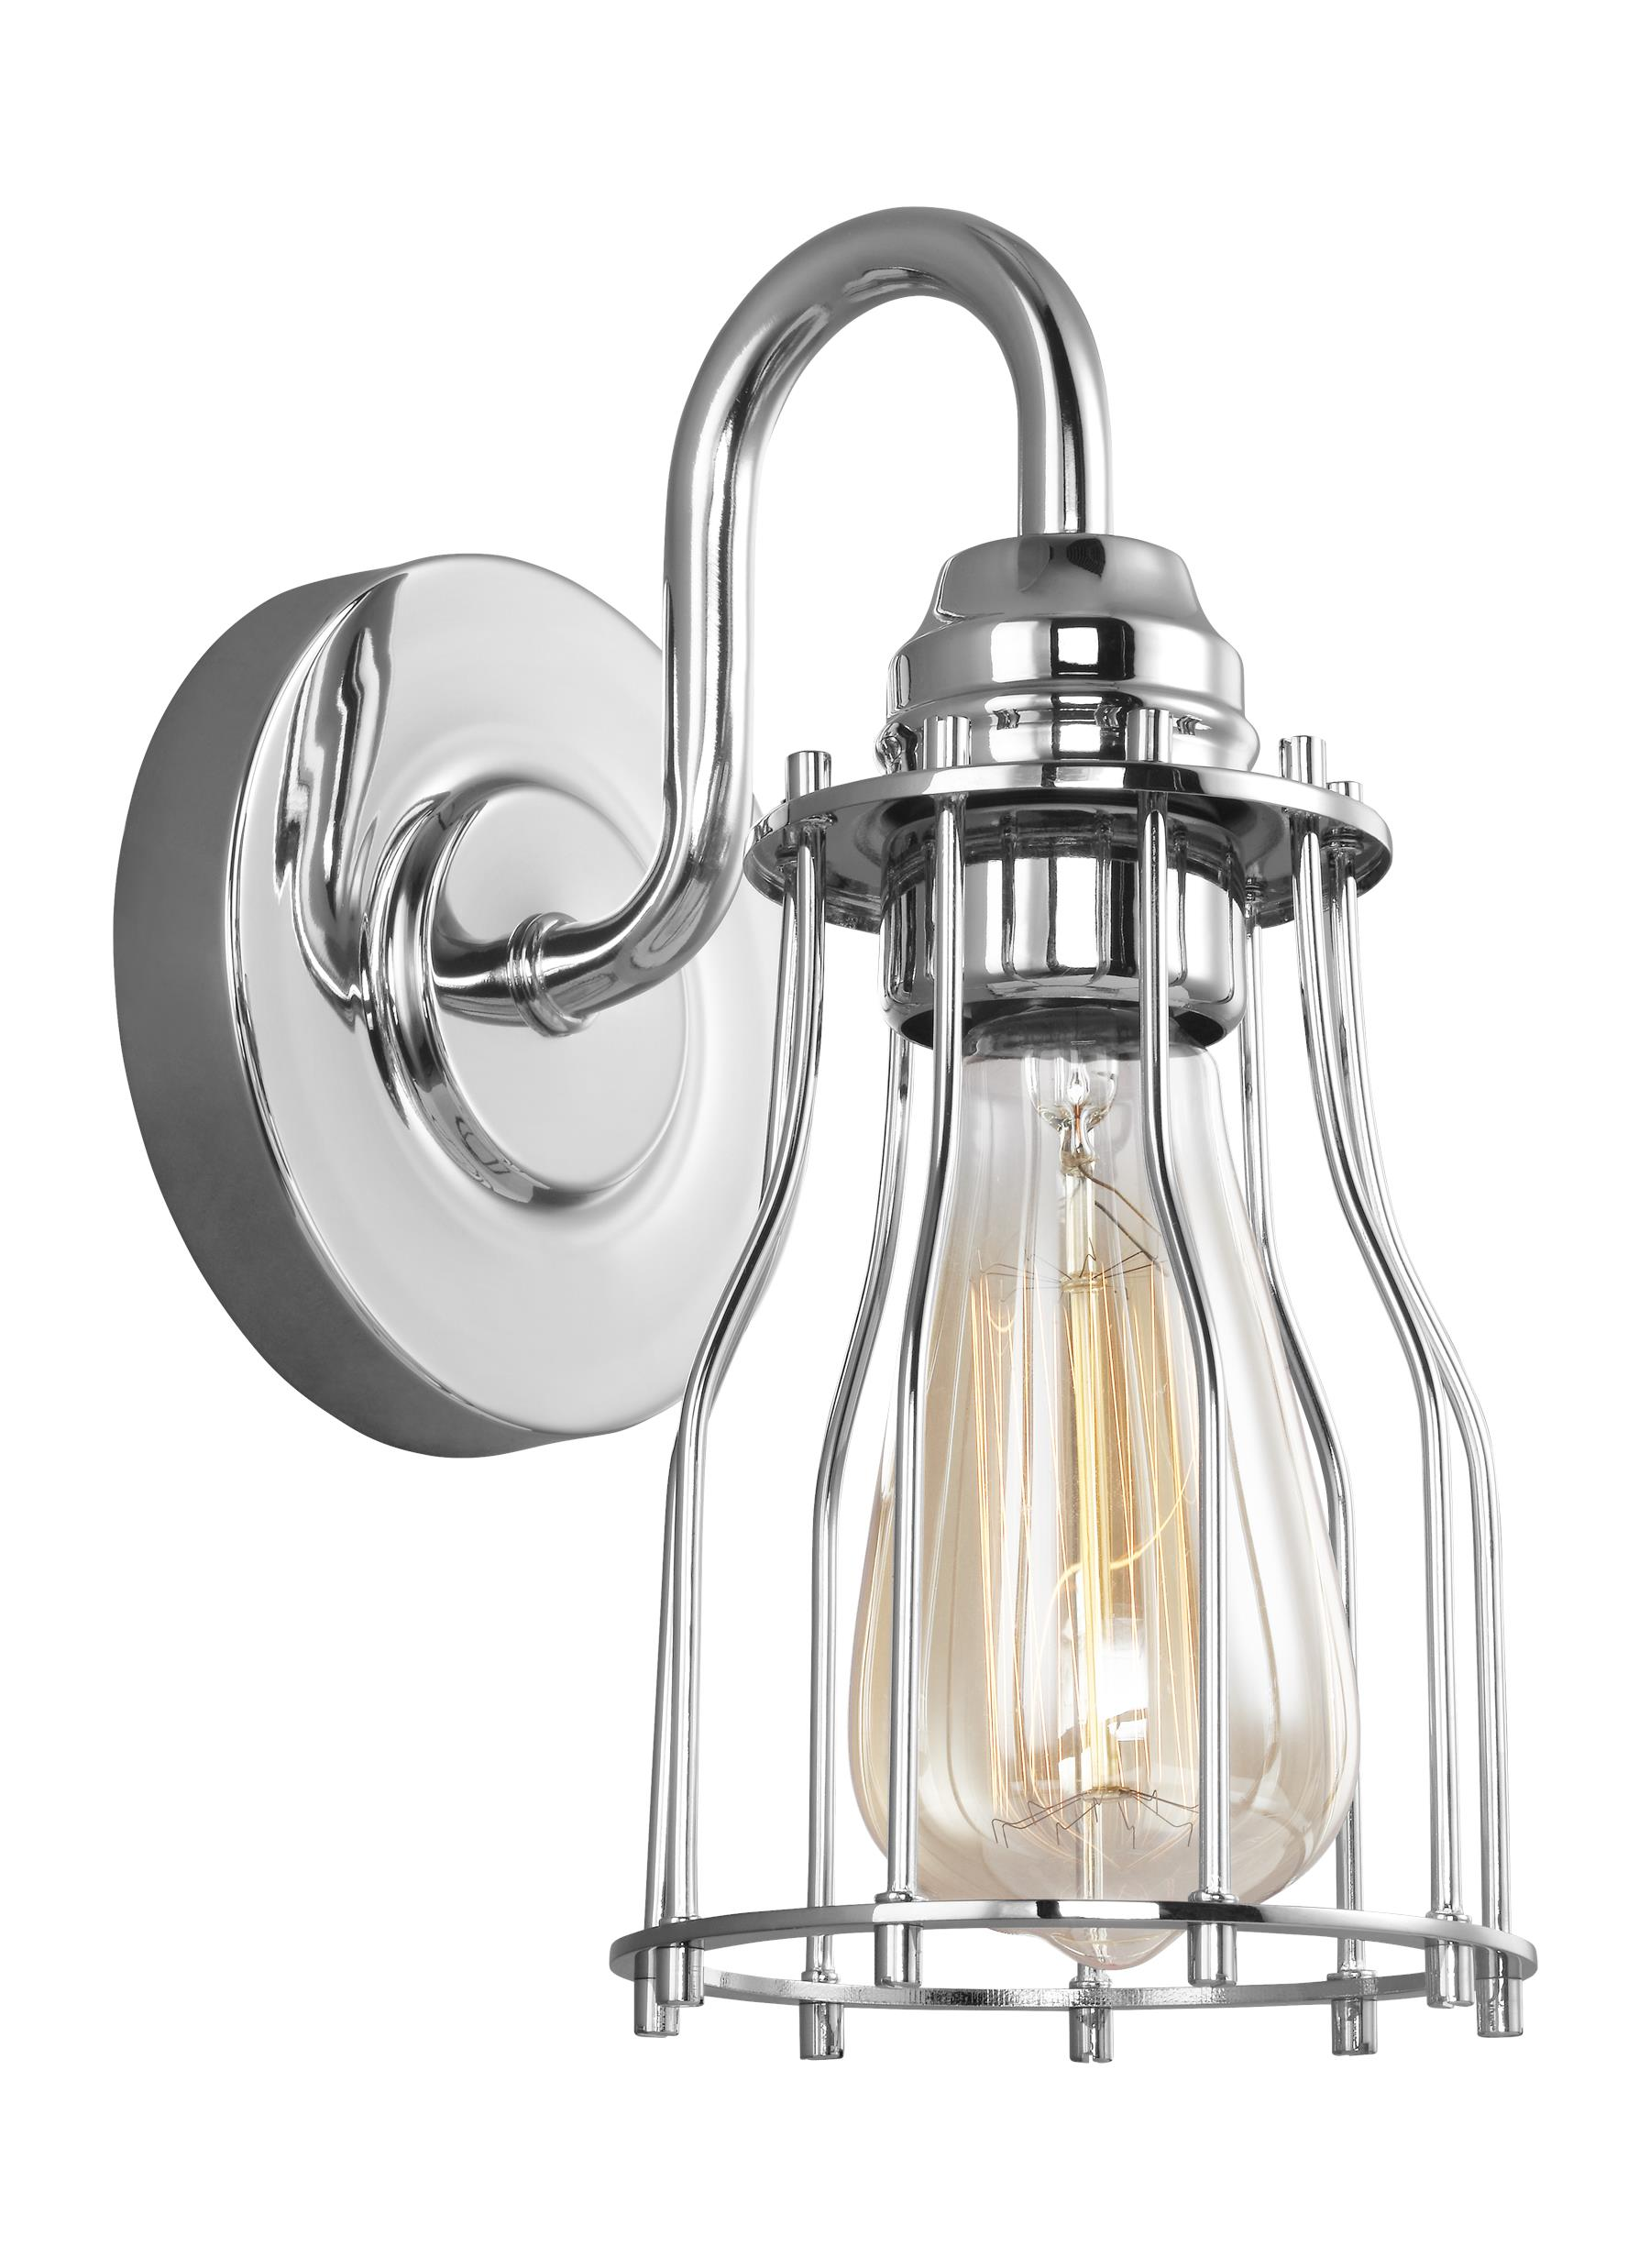 Calgary Collection 1 Wall Sconce